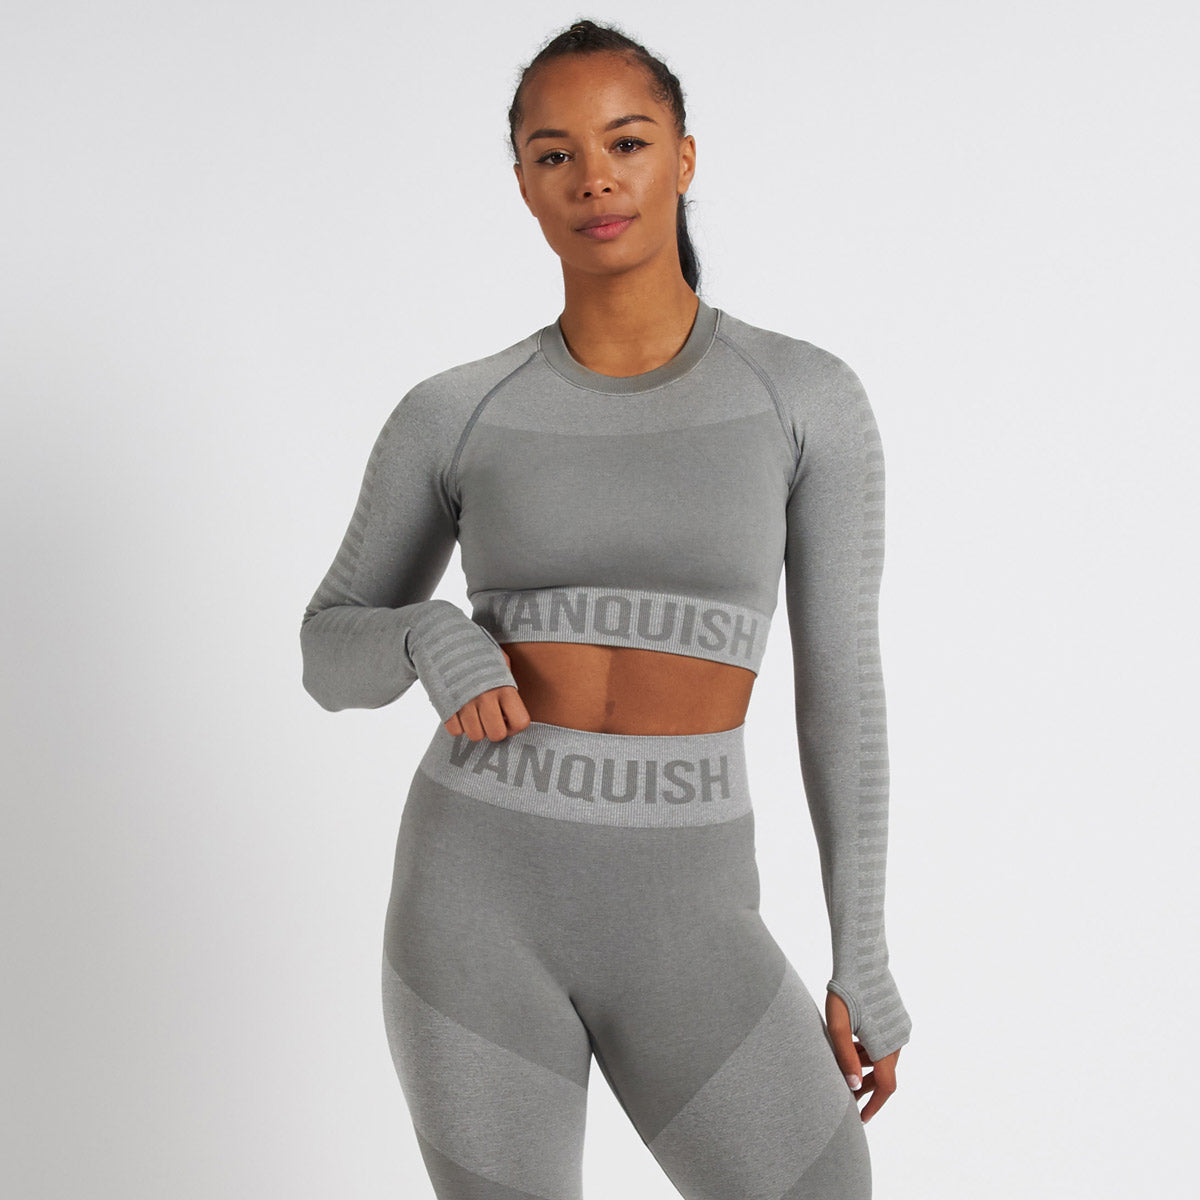 Vanquish Allure Women's Grey Seamless Long Sleeve Crop Top